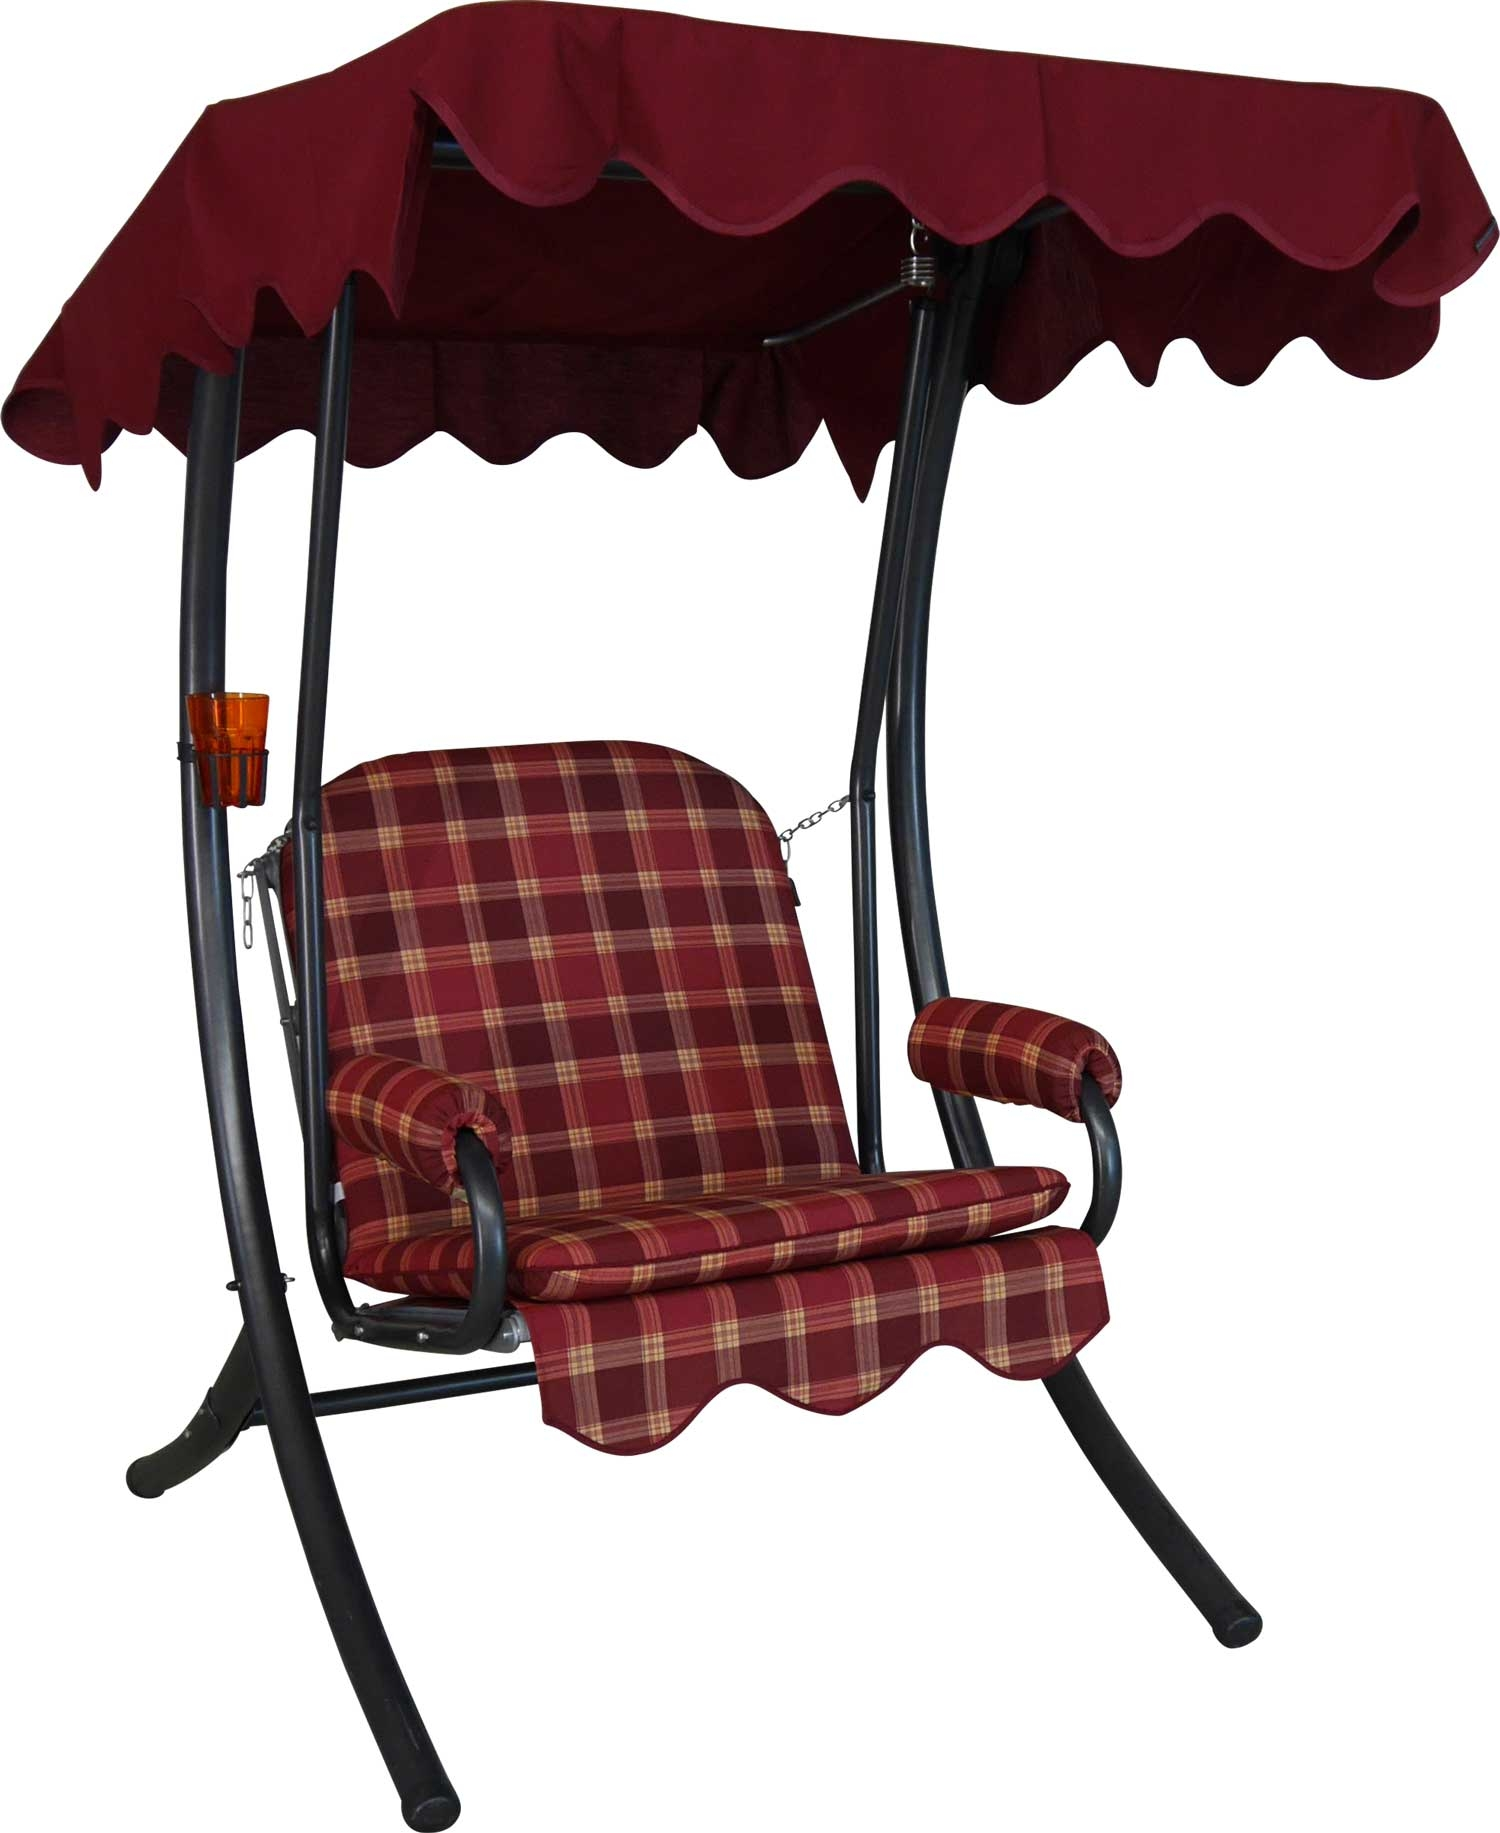 Angerer Hollywoodschaukel 1-Sitzer Rio bordeaux